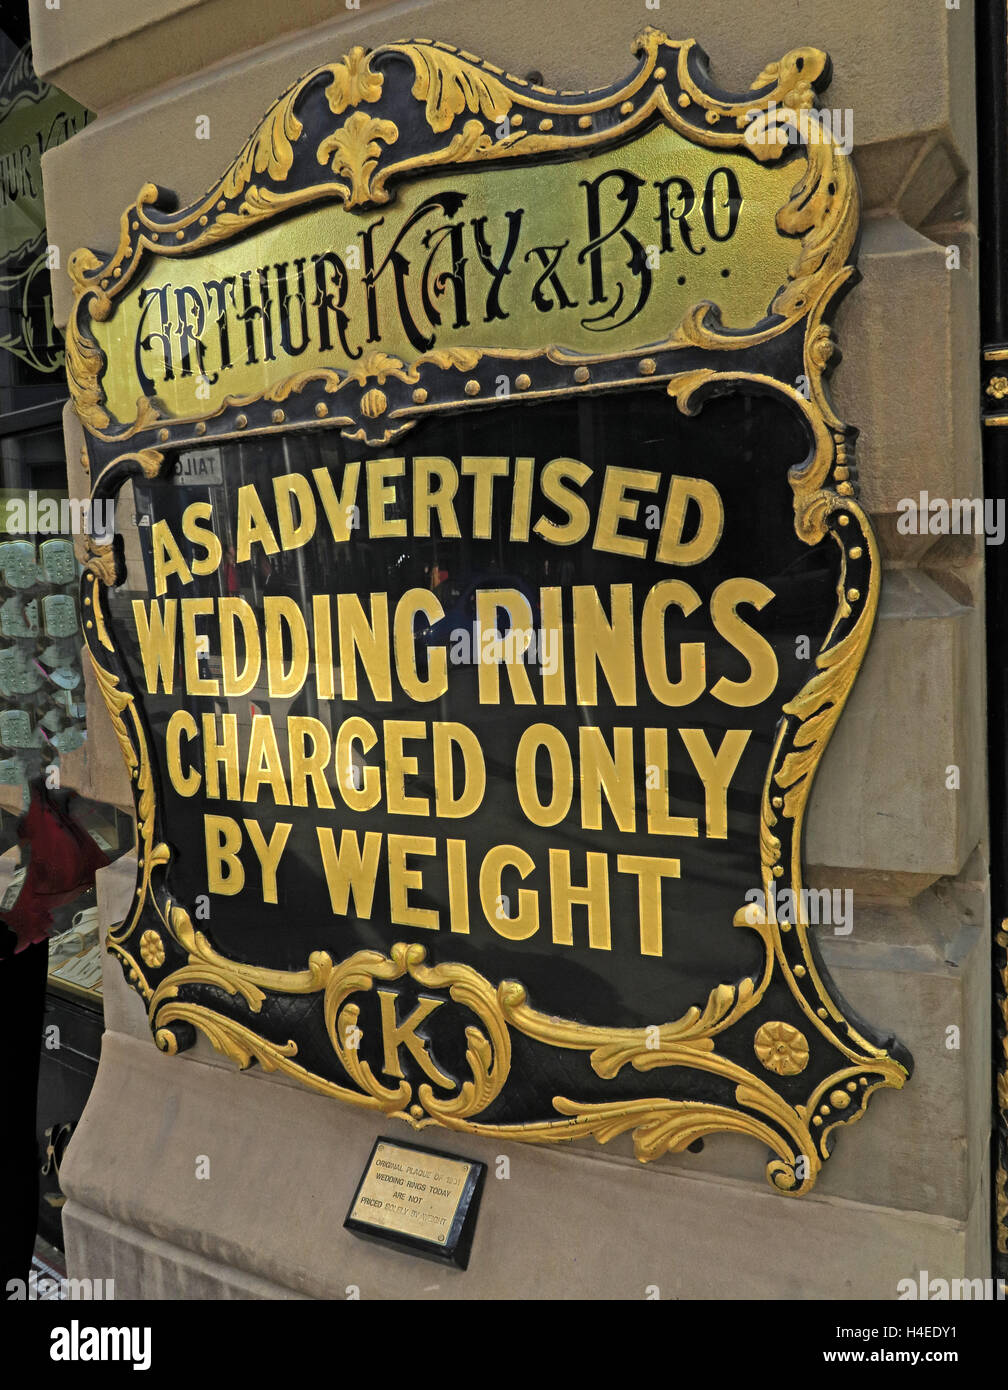 Bro,Jeweller,sign,plaque,gold,silver,#Brexit,Brexit,pound,devalued,inflation,precious,metal,metals,Charged,Only,By,Weight,notice,Market,Street,St,Manchester,England,UK,retail,economy,drop,value,in,M1,Devalued Pound,Arthur Kay,As advertised,Wedding Rings,Market St,Drop In Value,GoTonySmith,@HotpixUK,Tony,Smith,UK,GB,Great,Britain,United,Kingdom,English,British,England,M1,Buy Pictures of,Buy Images Of,Images of,Stock Images,Tony Smith,United Kingdom,Great Britain,British Isles,drop in value of pound since brexit,drop in value of pound brexit,affect the pound,Royal Exchange Theatre,2 New Market,M1 1PT